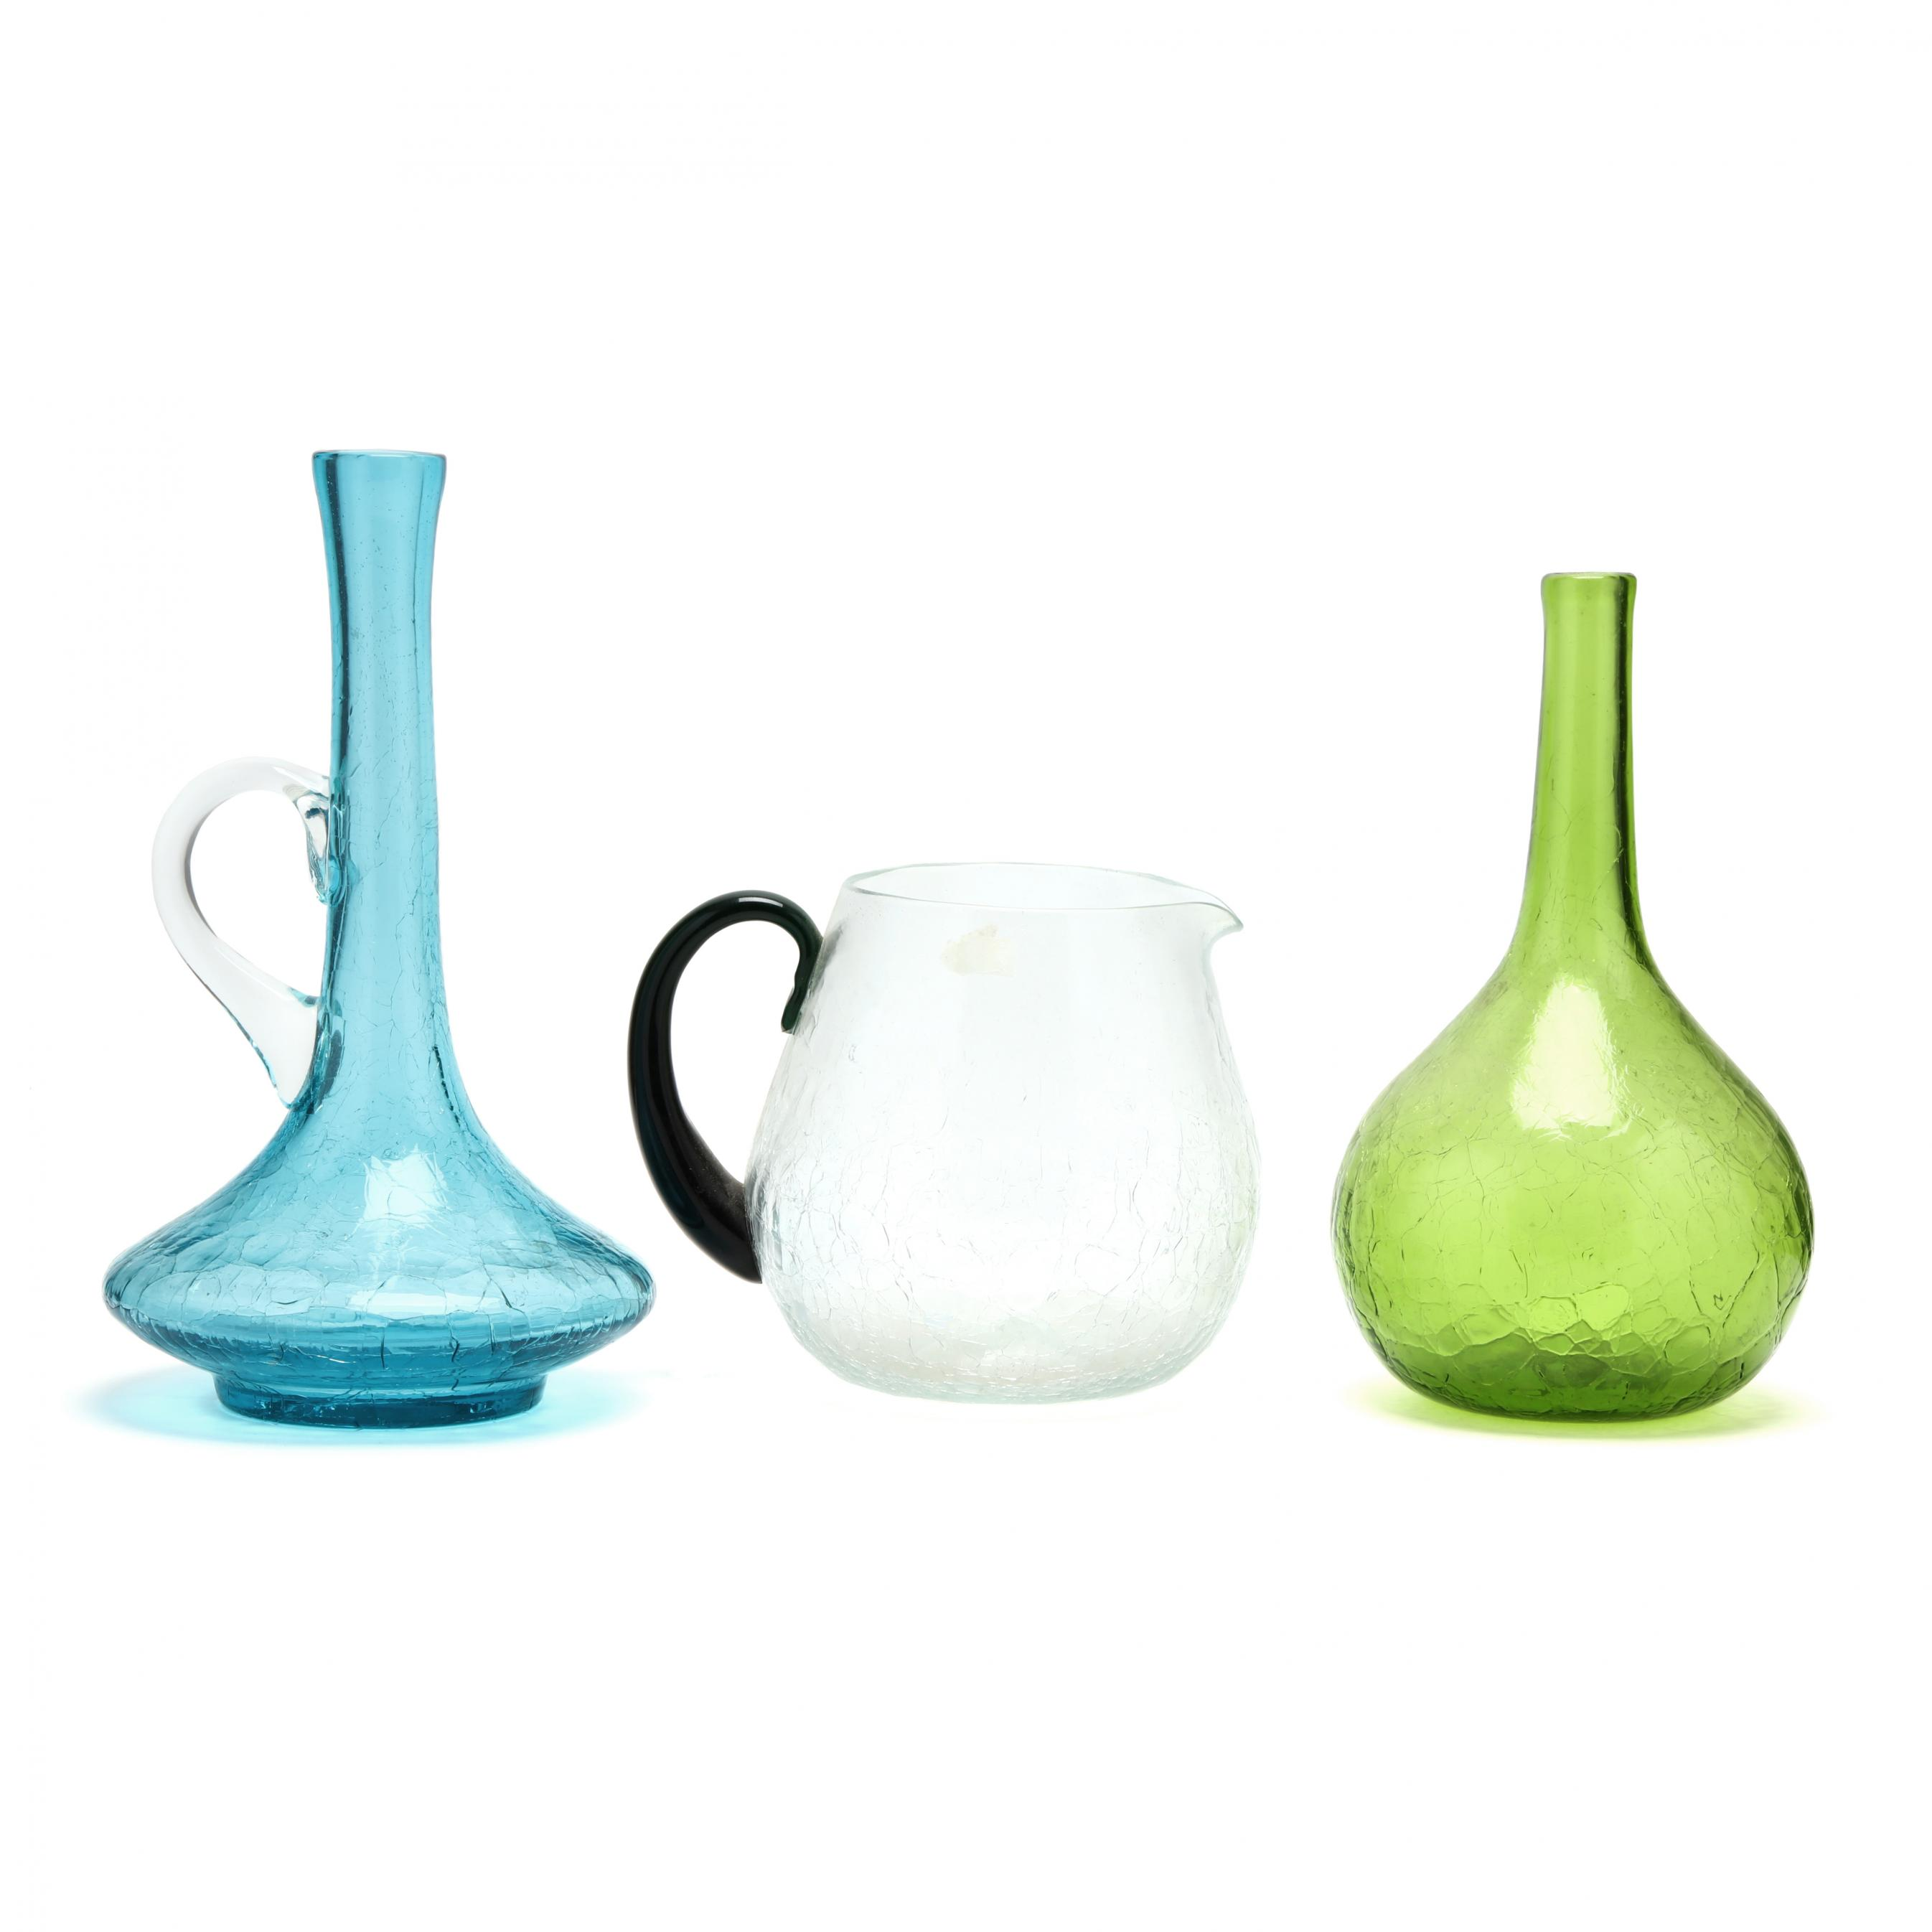 blenko-three-crackle-glass-pitchers